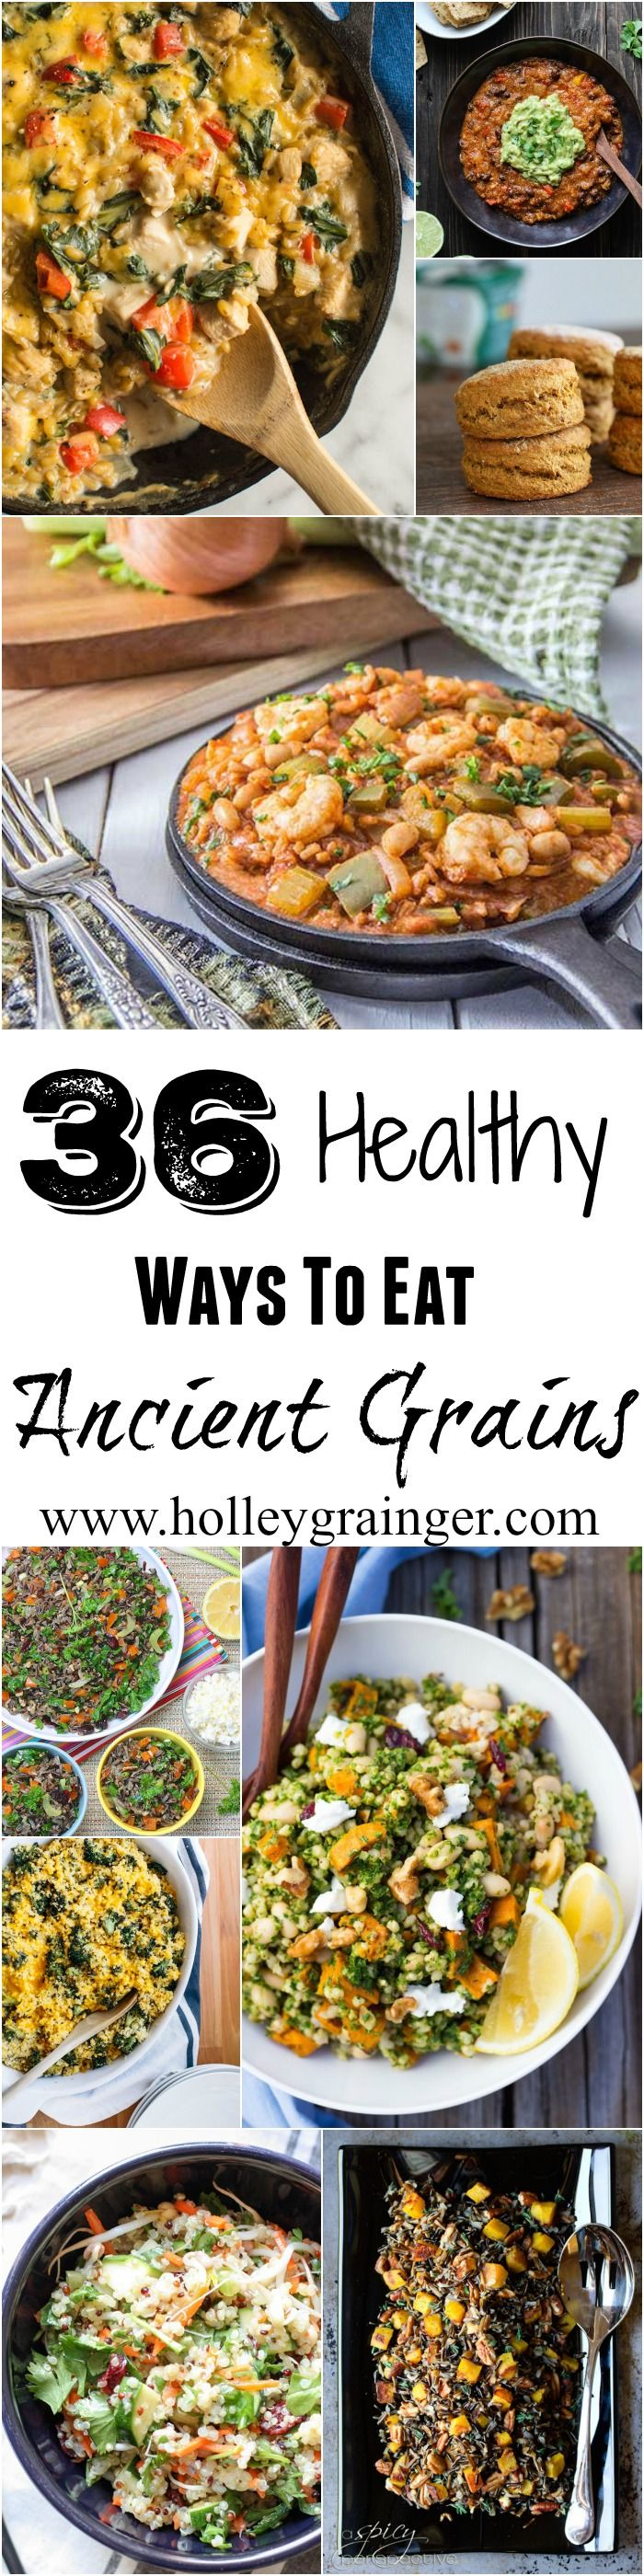 36 Healthy Ways To Eat Ancient Grains